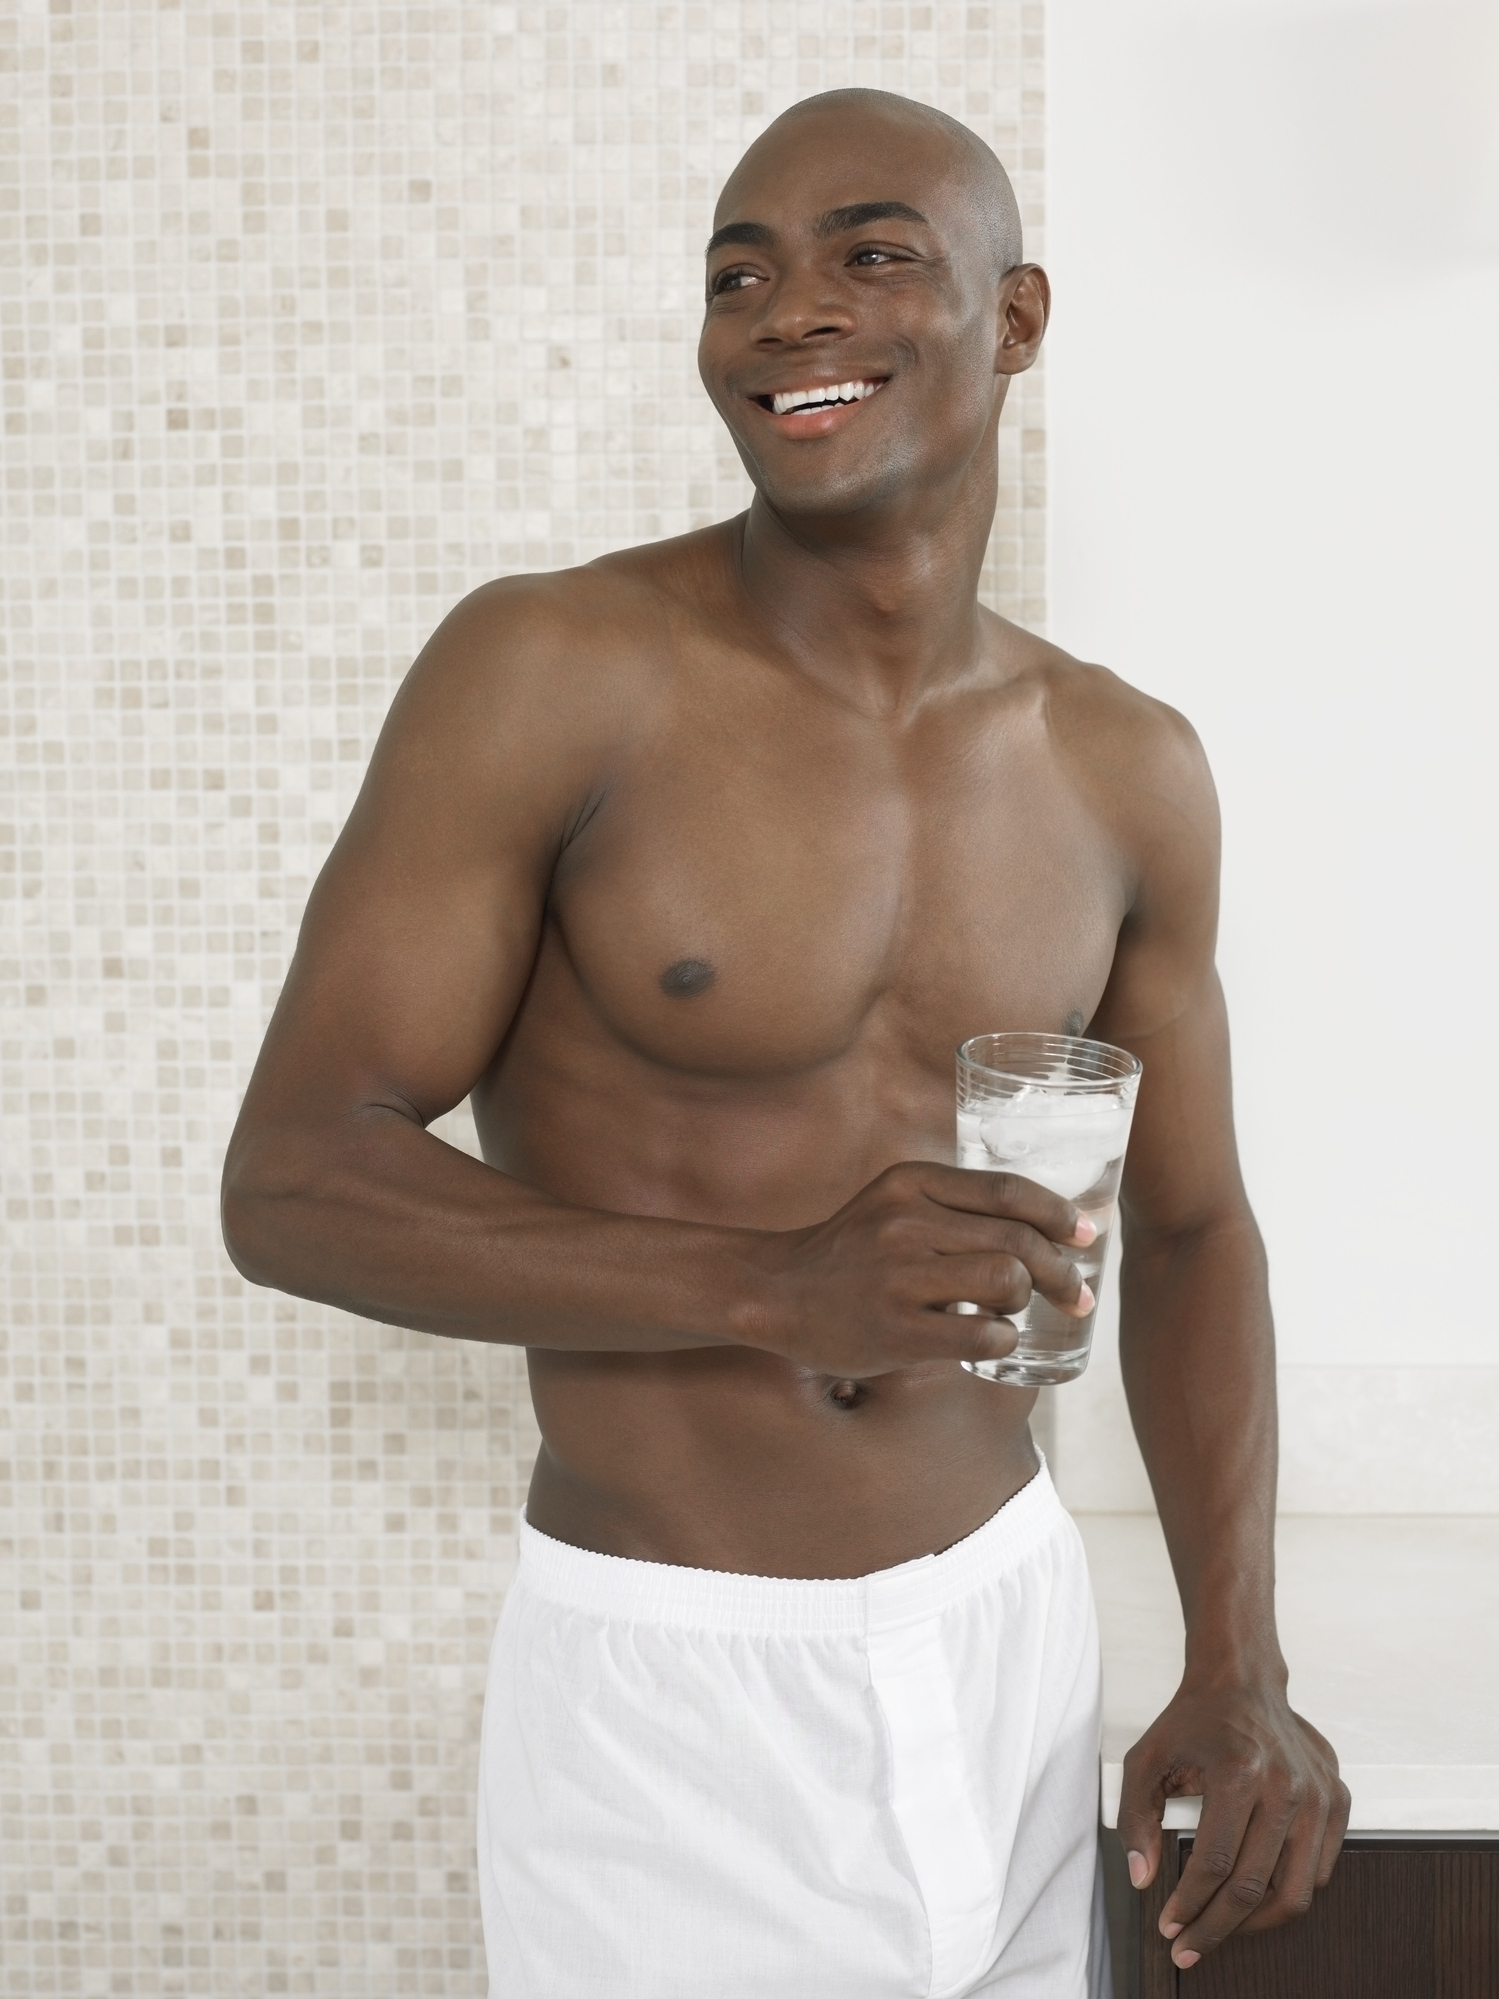 Man Stands in Bathroom in His Boxer Shorts Holding a Glass of Water